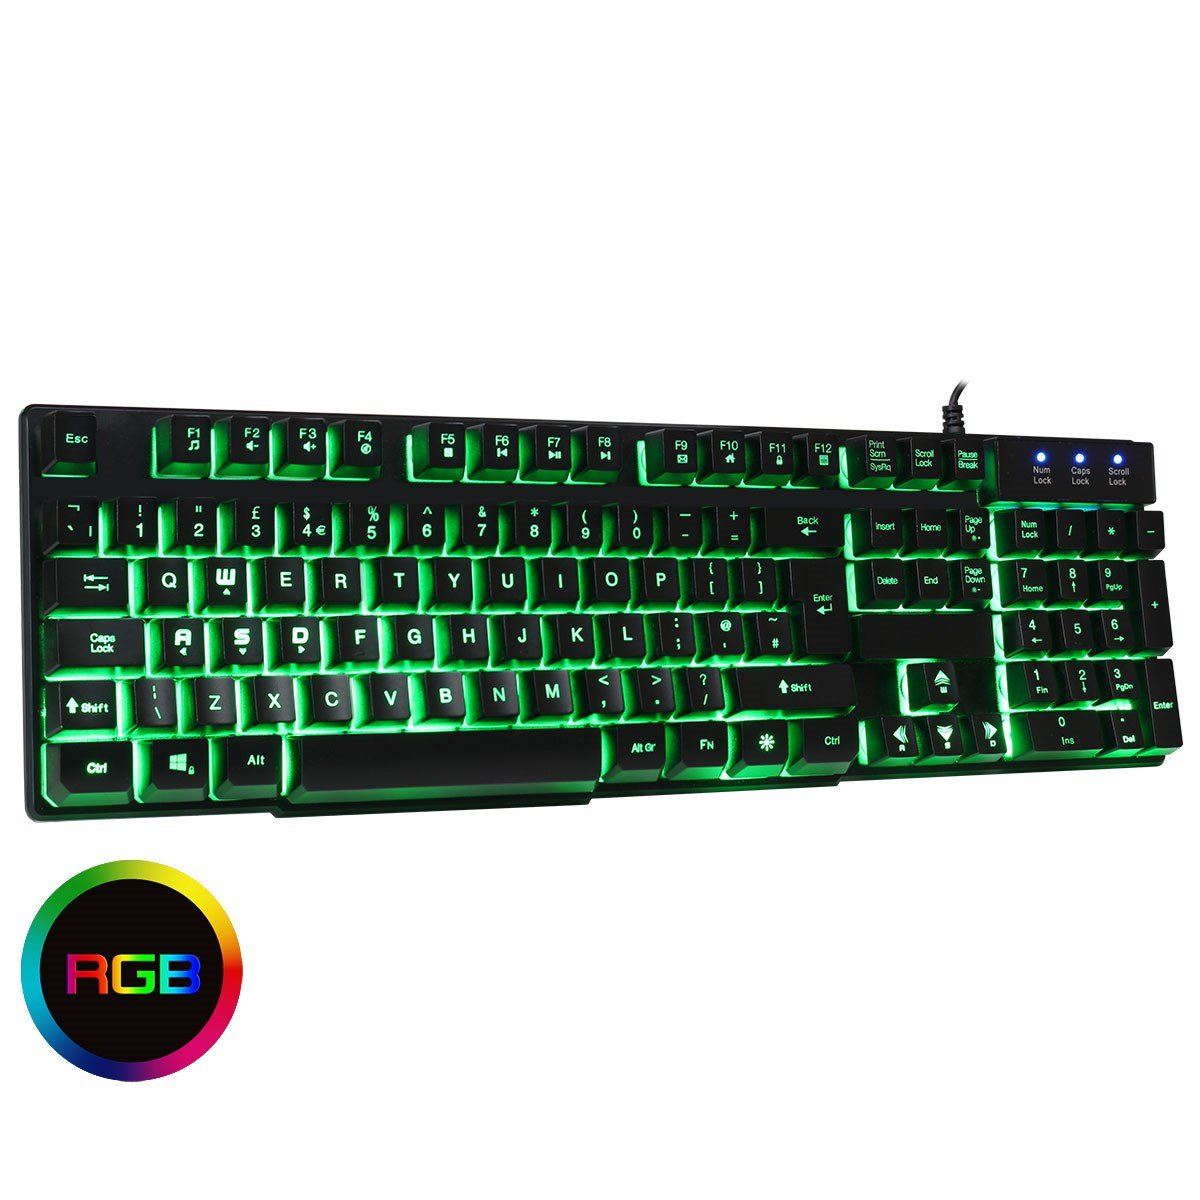 0f5784d64af CiT Builder Wired RGB Gaming Keyboard - KB-BUILDERRGB | CCL Computers